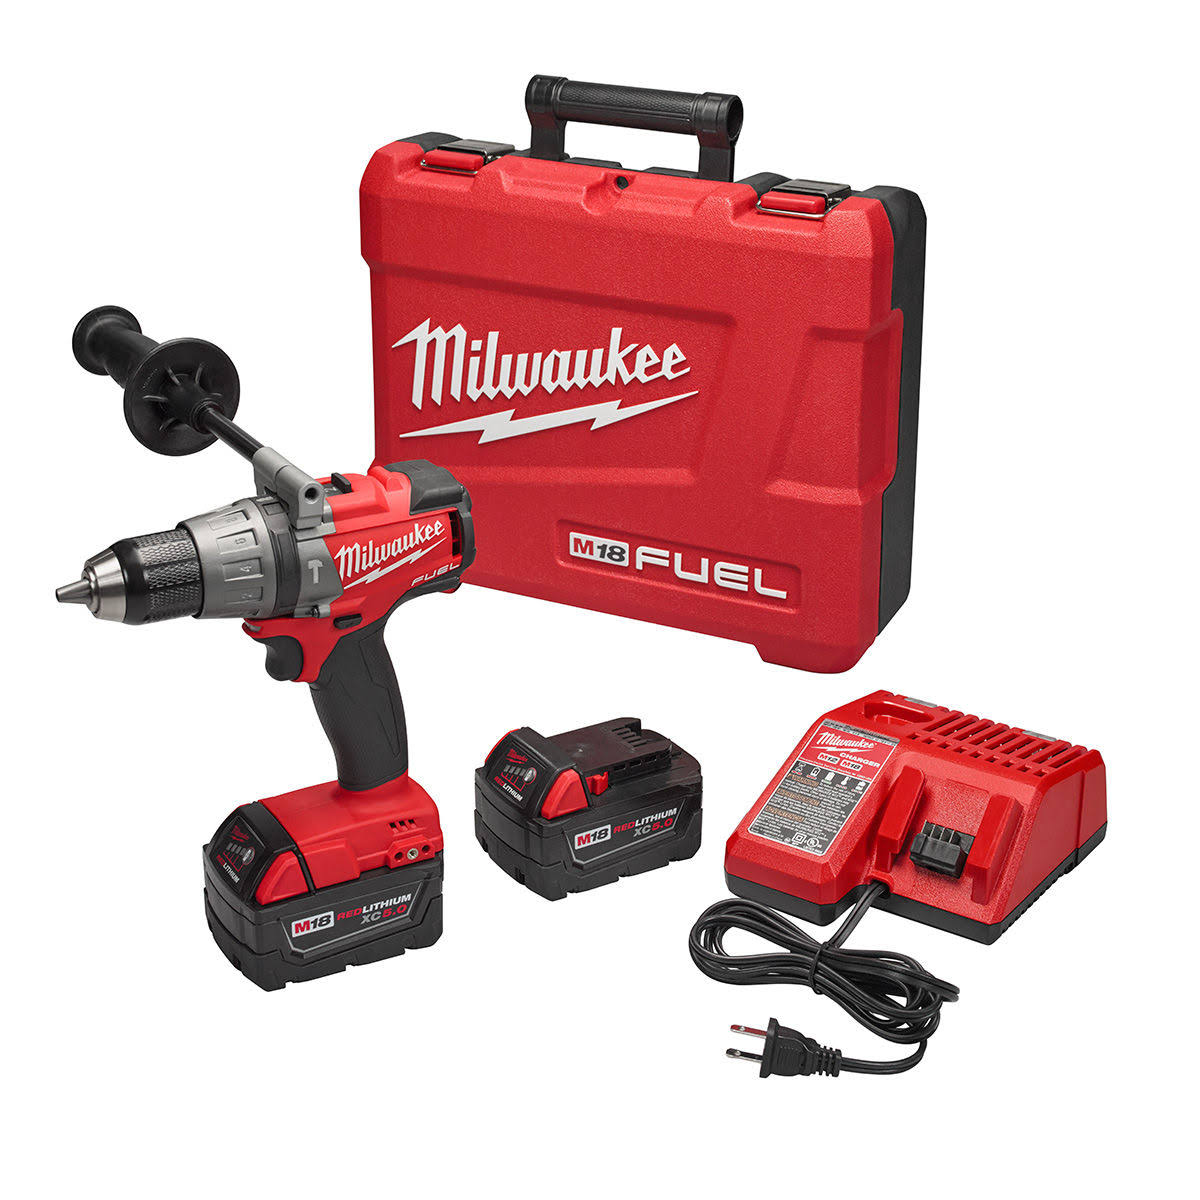 Milwaukee 2704-22 M18 Fuel Hammer Drill Driver Kit